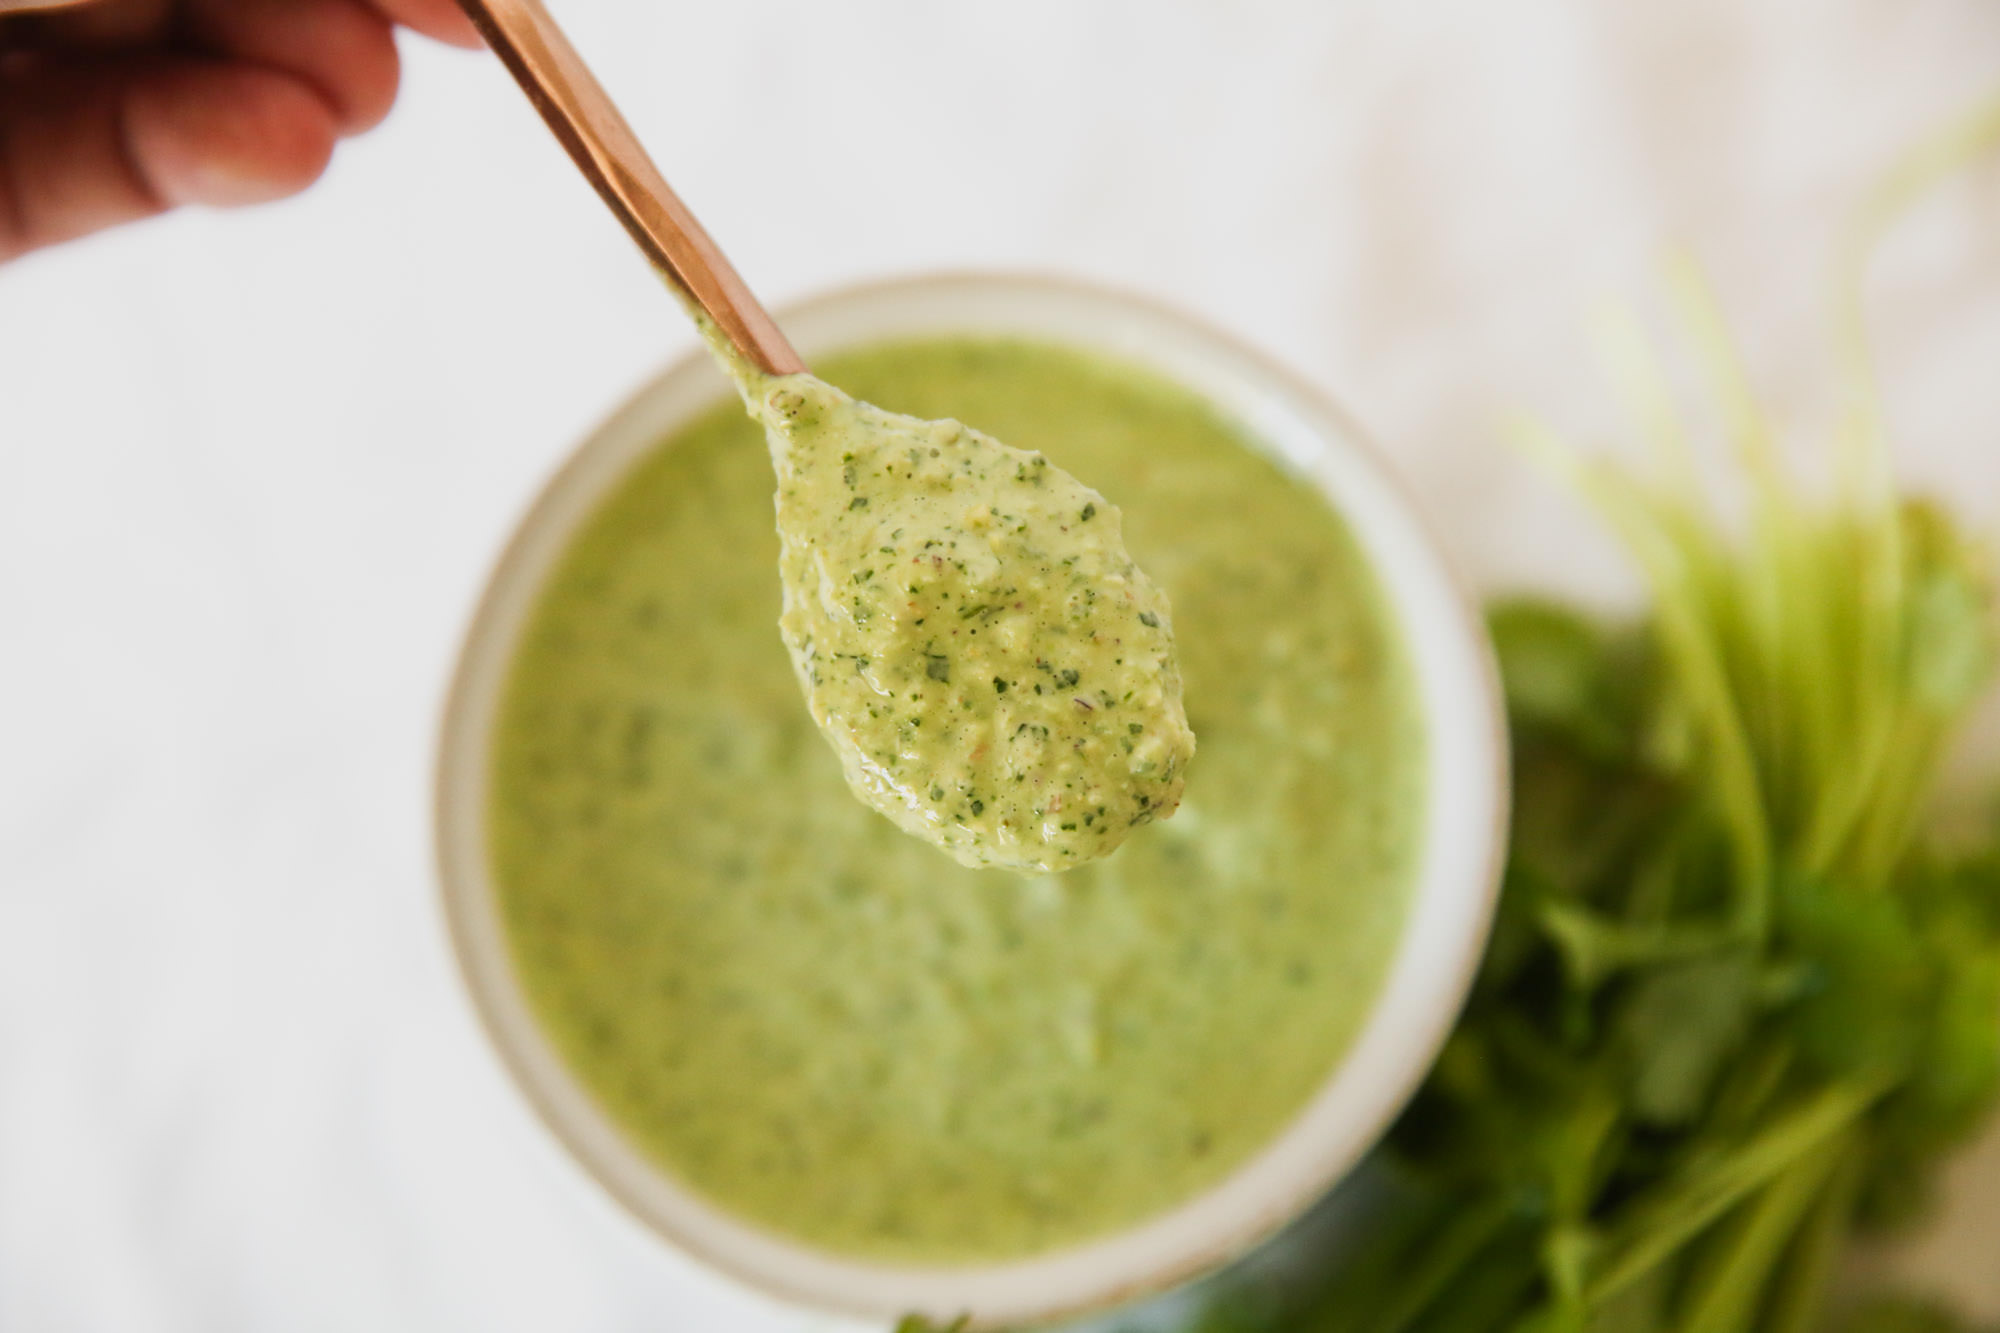 Spoonful of green salad dressing